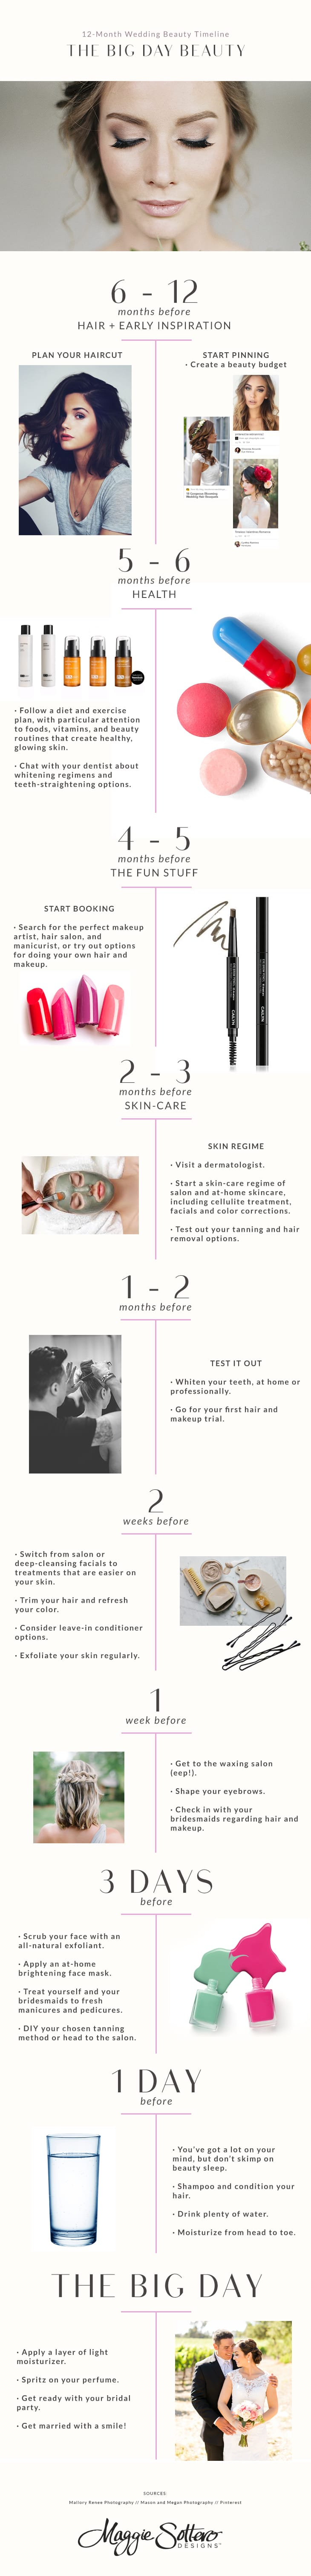 12 Month Pre-Wedding Beauty and Health Plan for Brides-to-Be!